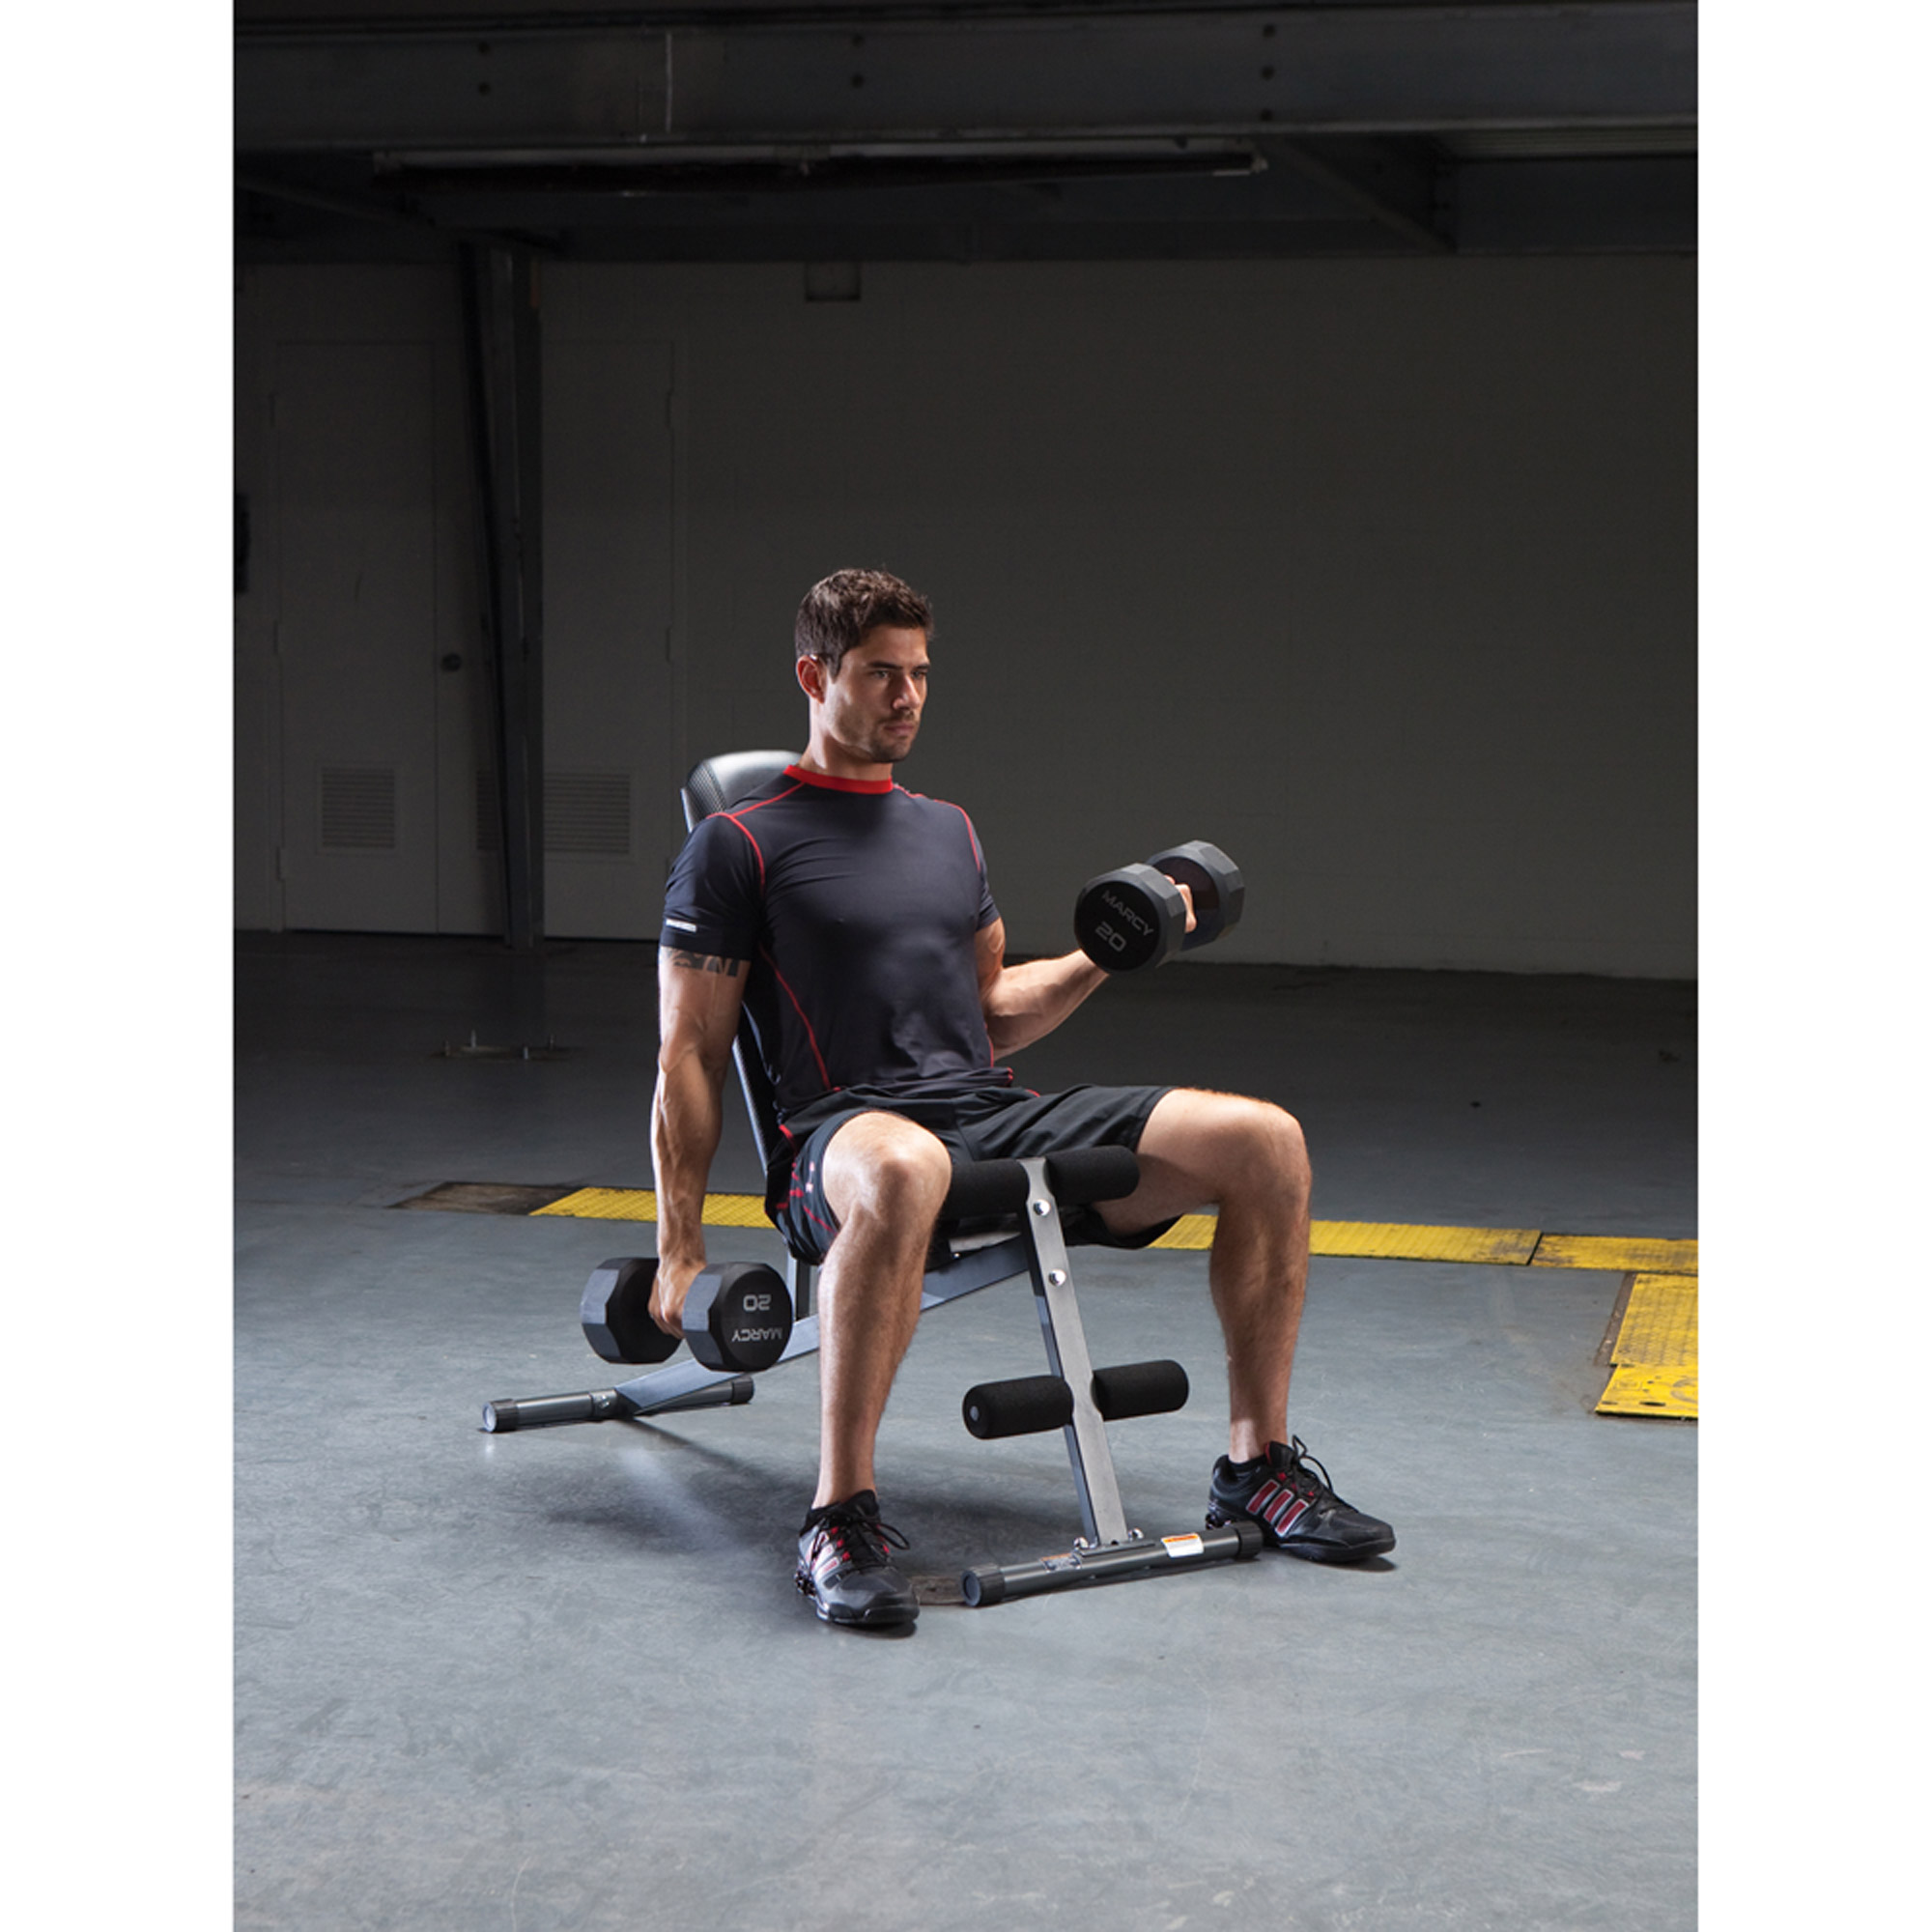 Marcy Utility Bench: SB-261W, olympic exercise equipment,body solid folding utility bench,keys fitness benches